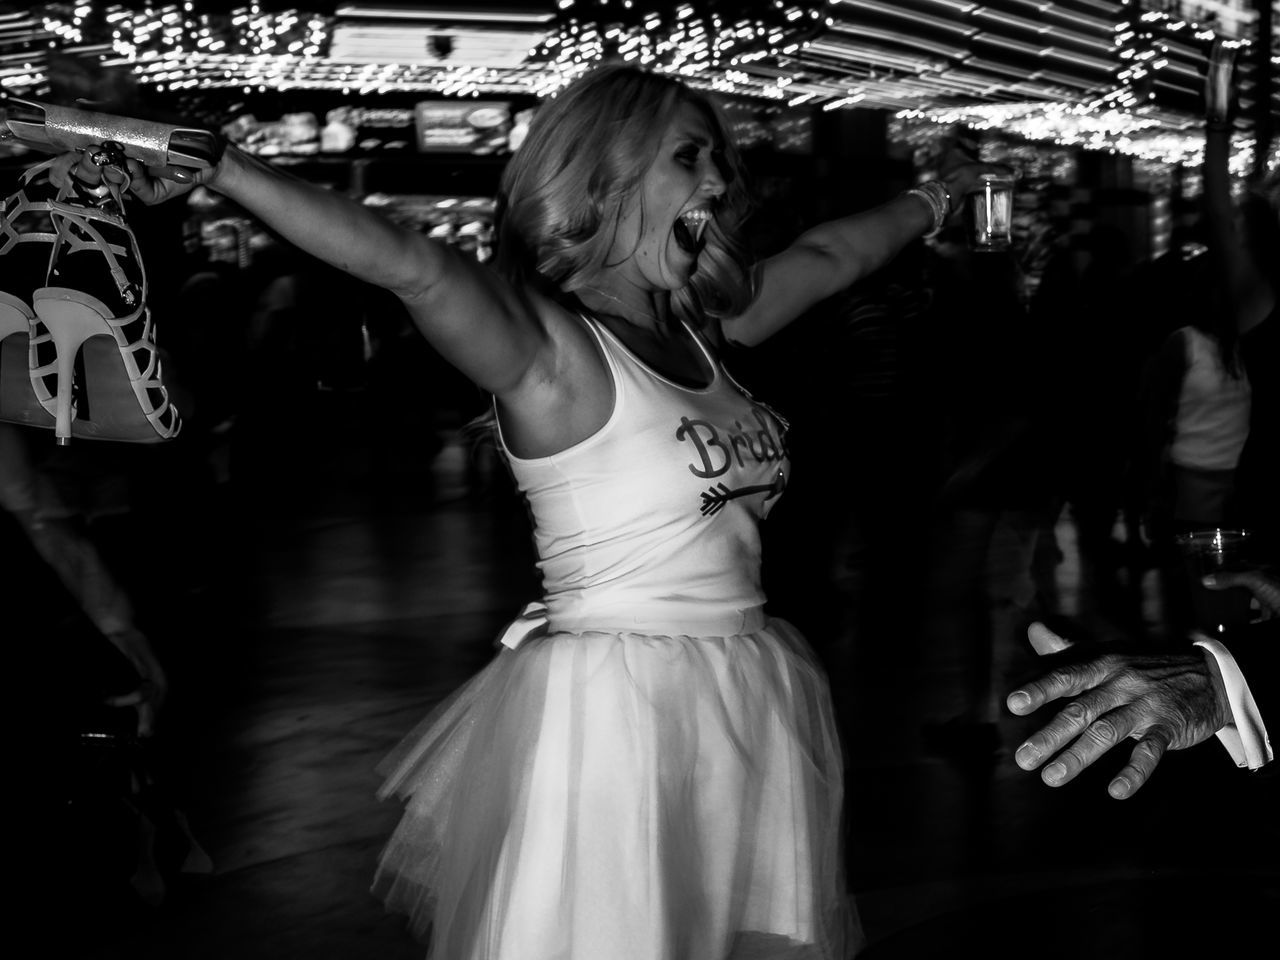 Blackandwhite Candid Photography Candid Portraits Everybodystreet Flash Photography Monochrome People In The Streets People Photography Random People Real People Slow Shutter Streetphoto_bw Streetphotography The Street Photographer - 2017 EyeEm Awards